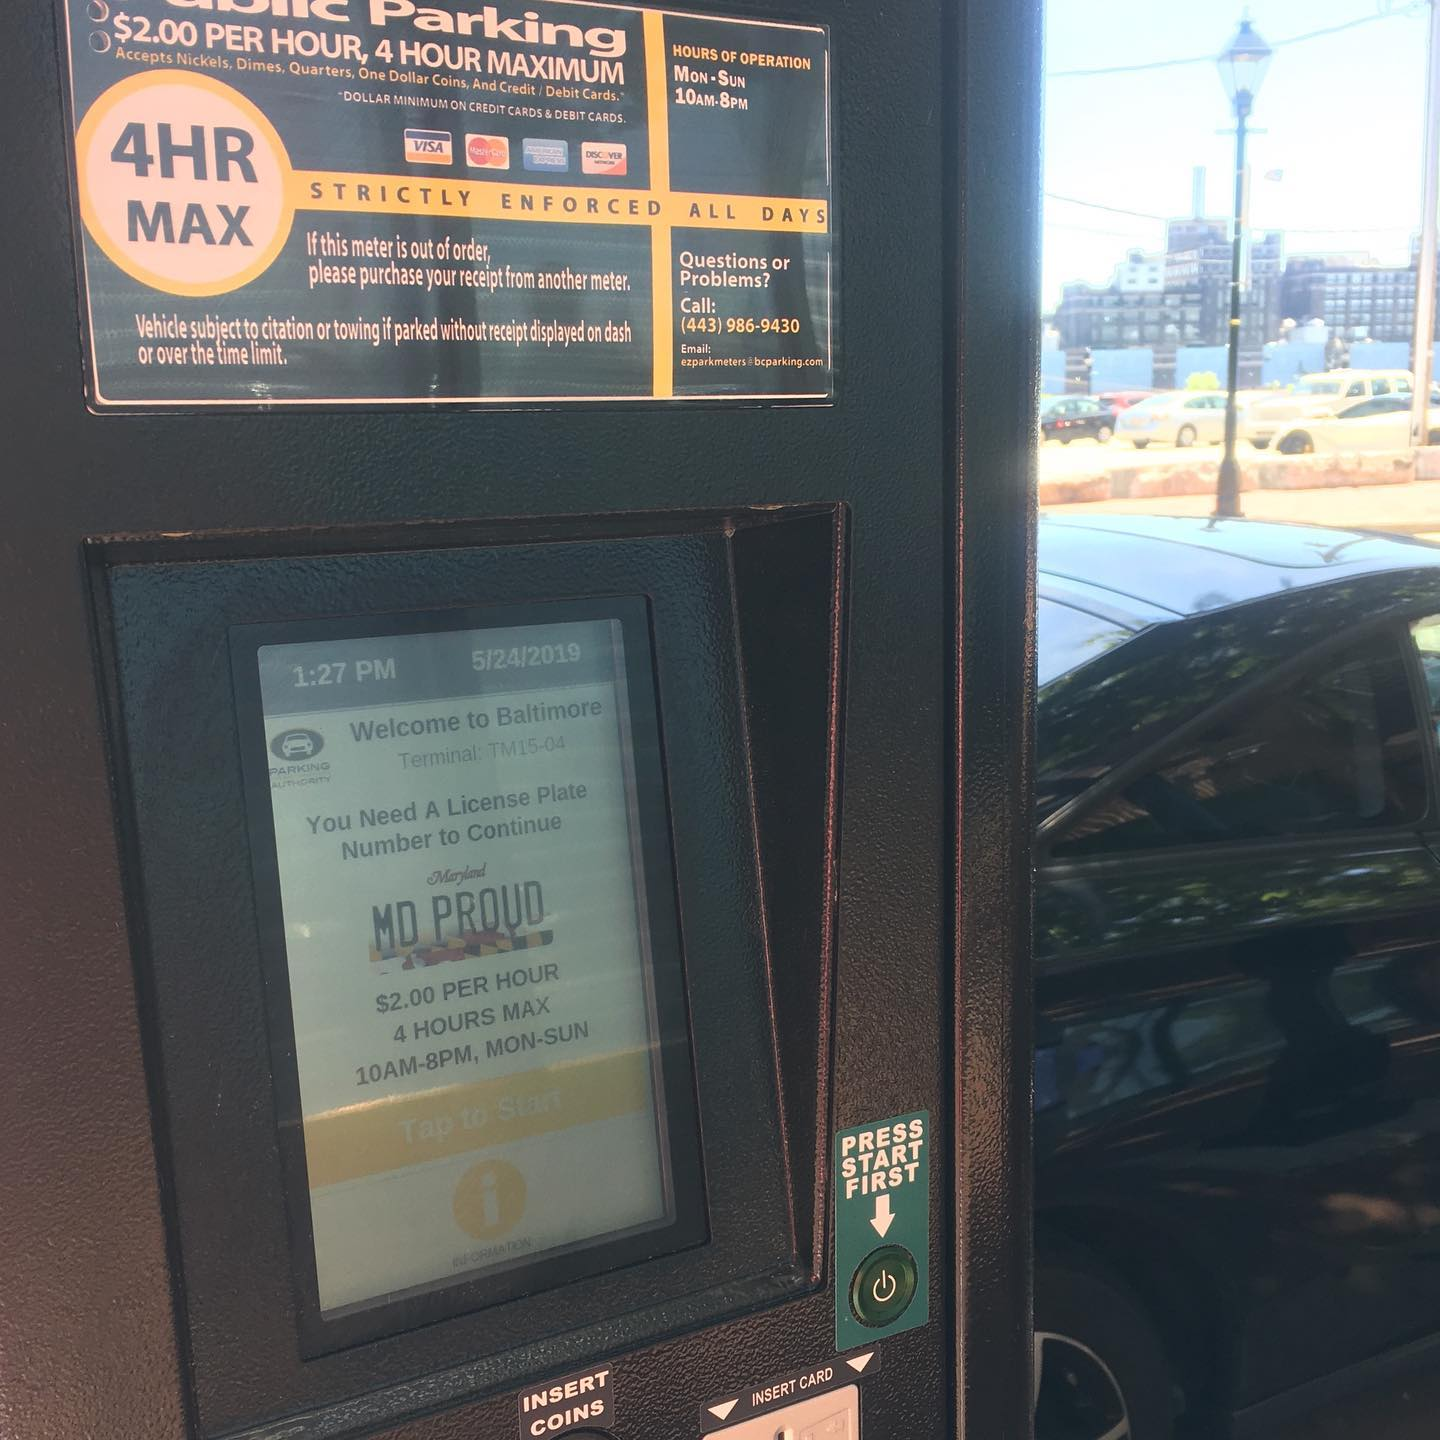 New touch screen parking meters